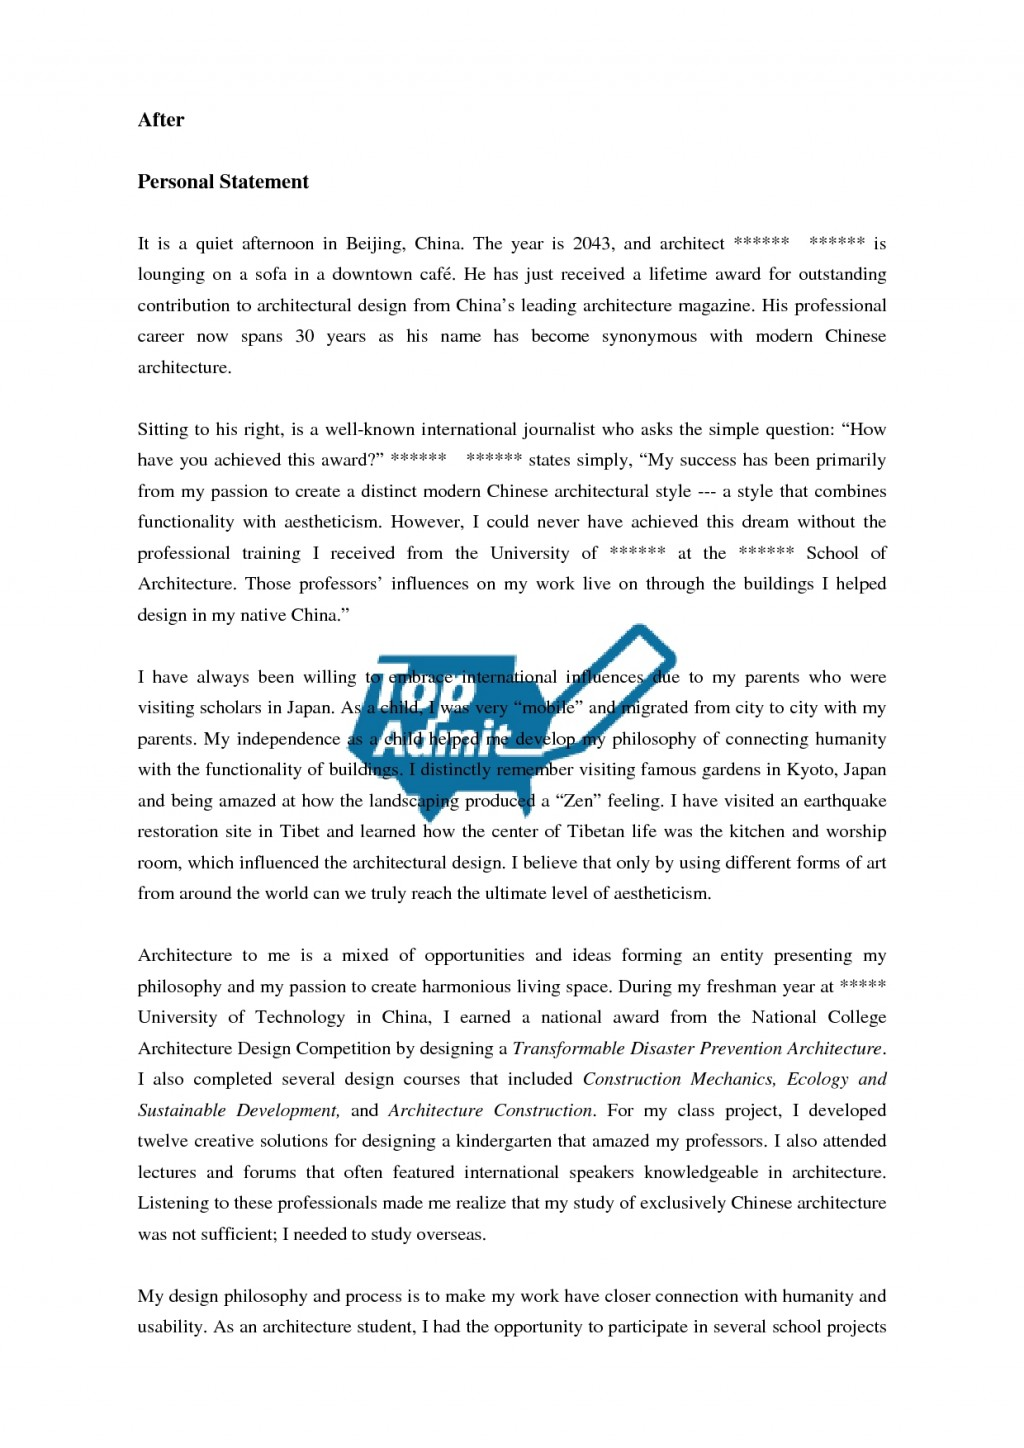 013 Essay Example Zwjgmmd Ucf Fascinating Application Admission Question Word Limit Large